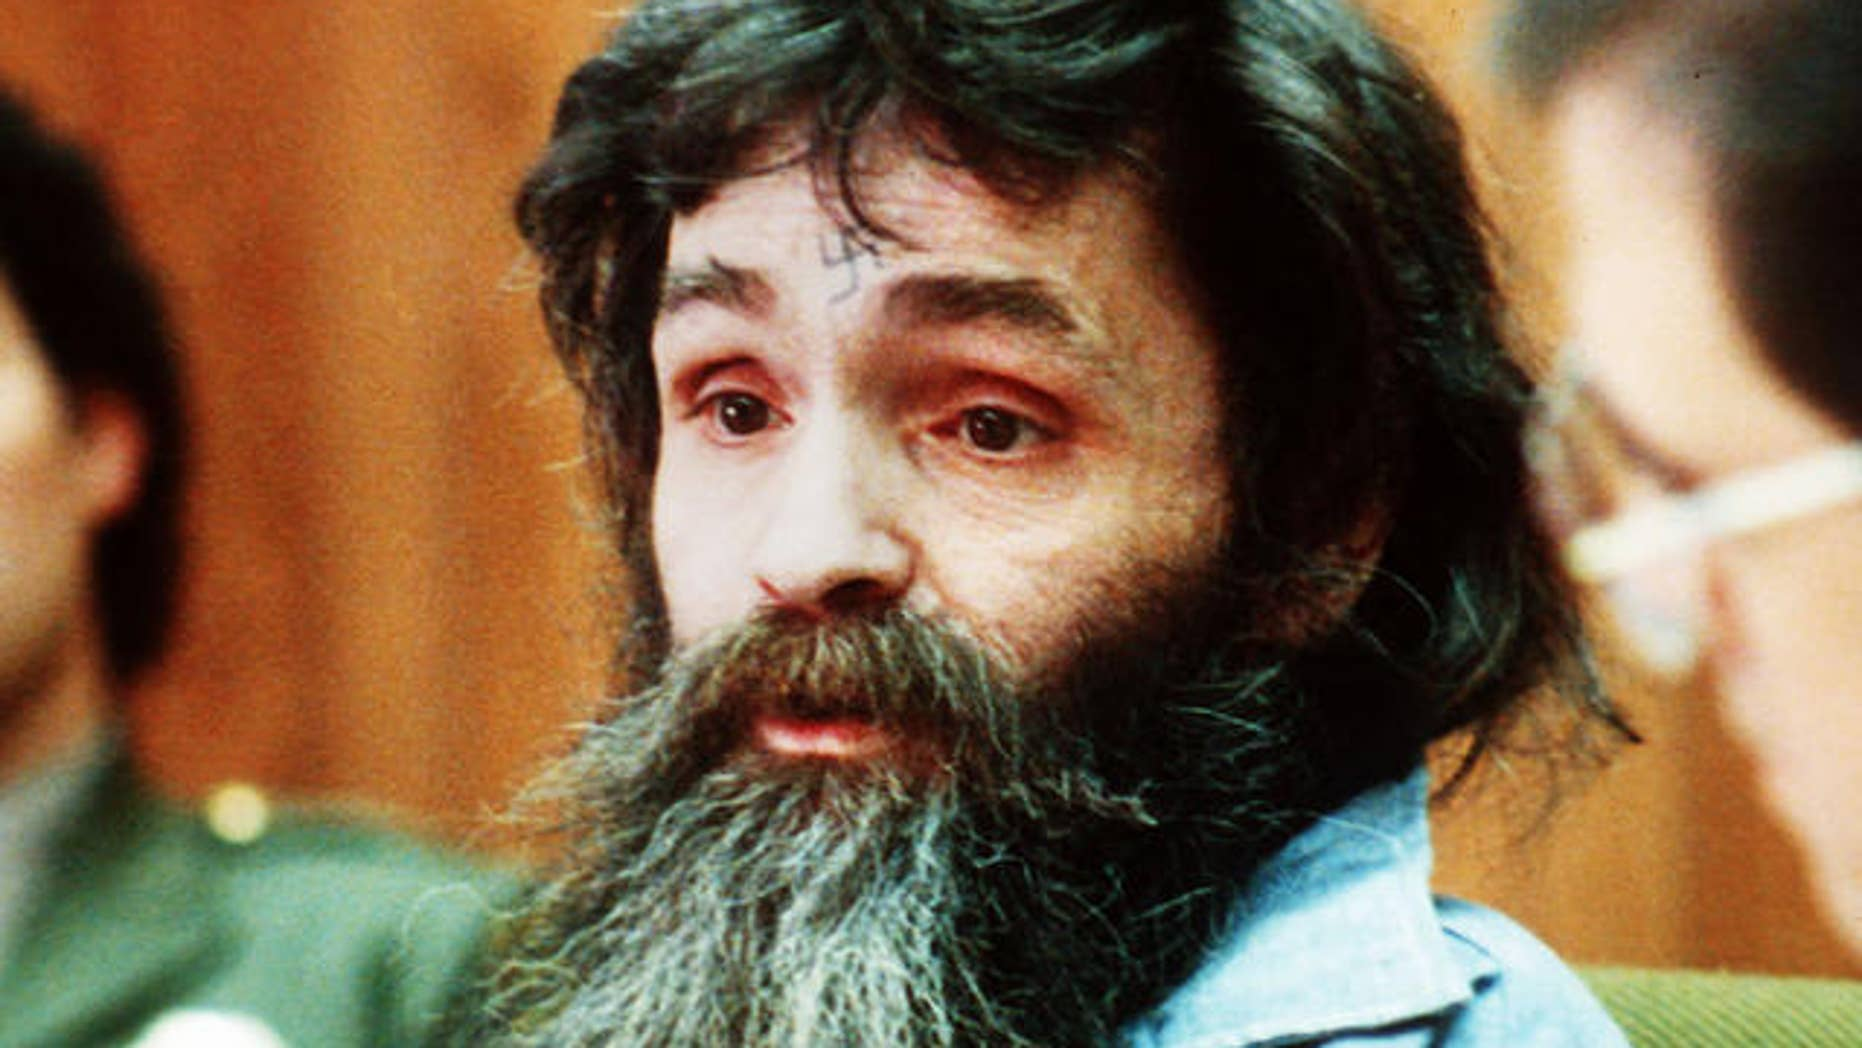 **FILE** Charles Manson was denied parole Wednesday May 23, 2007, the 11th time since 1978 that the cult leader was ordered to continue serving life sentences for a murderous rampage in 1969. (AP-Photo)